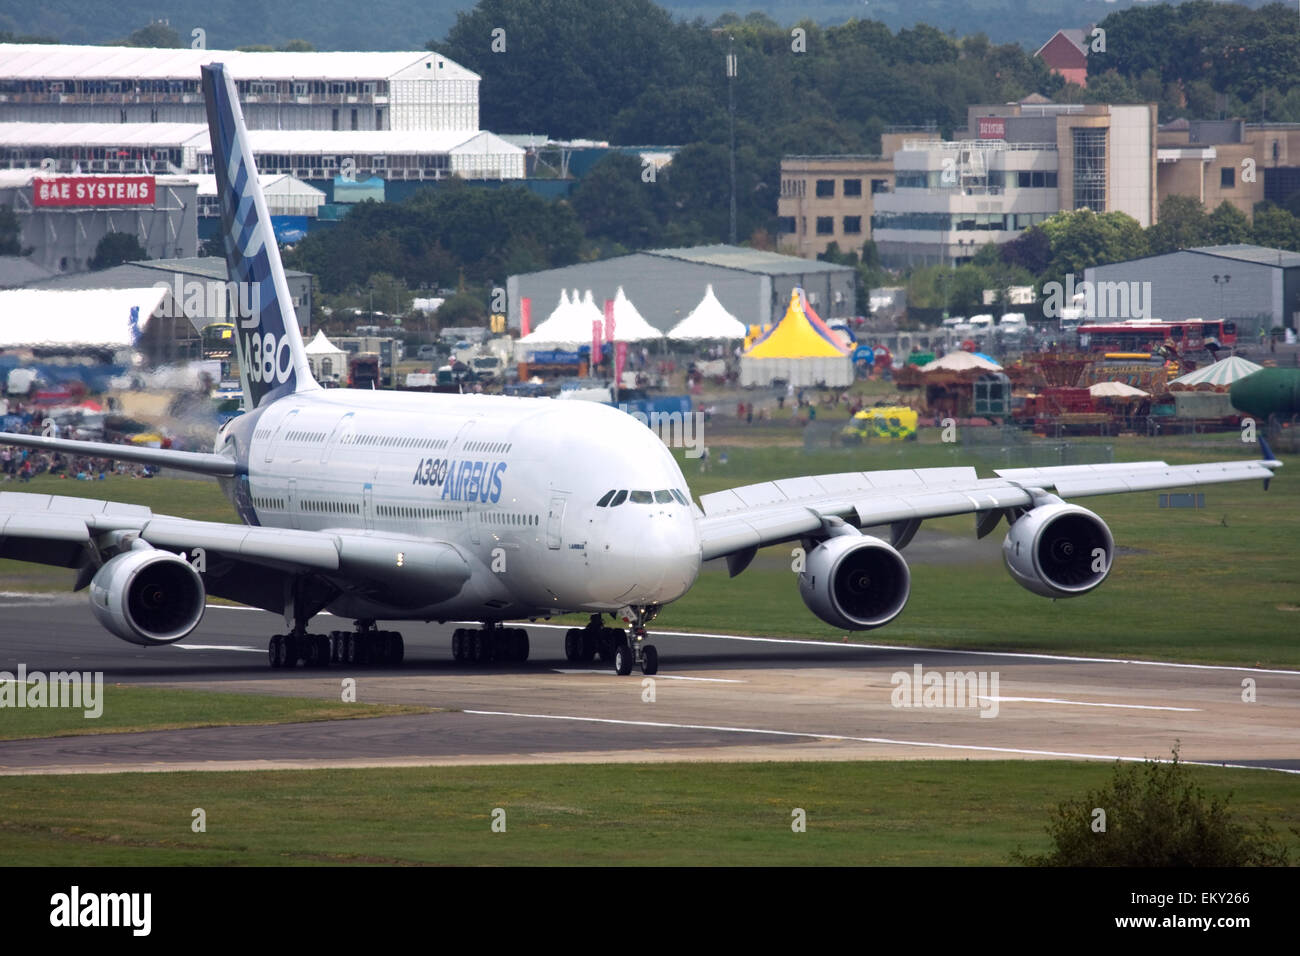 Airbus A380 at Farnborough International Airshow 2015 - Stock Image